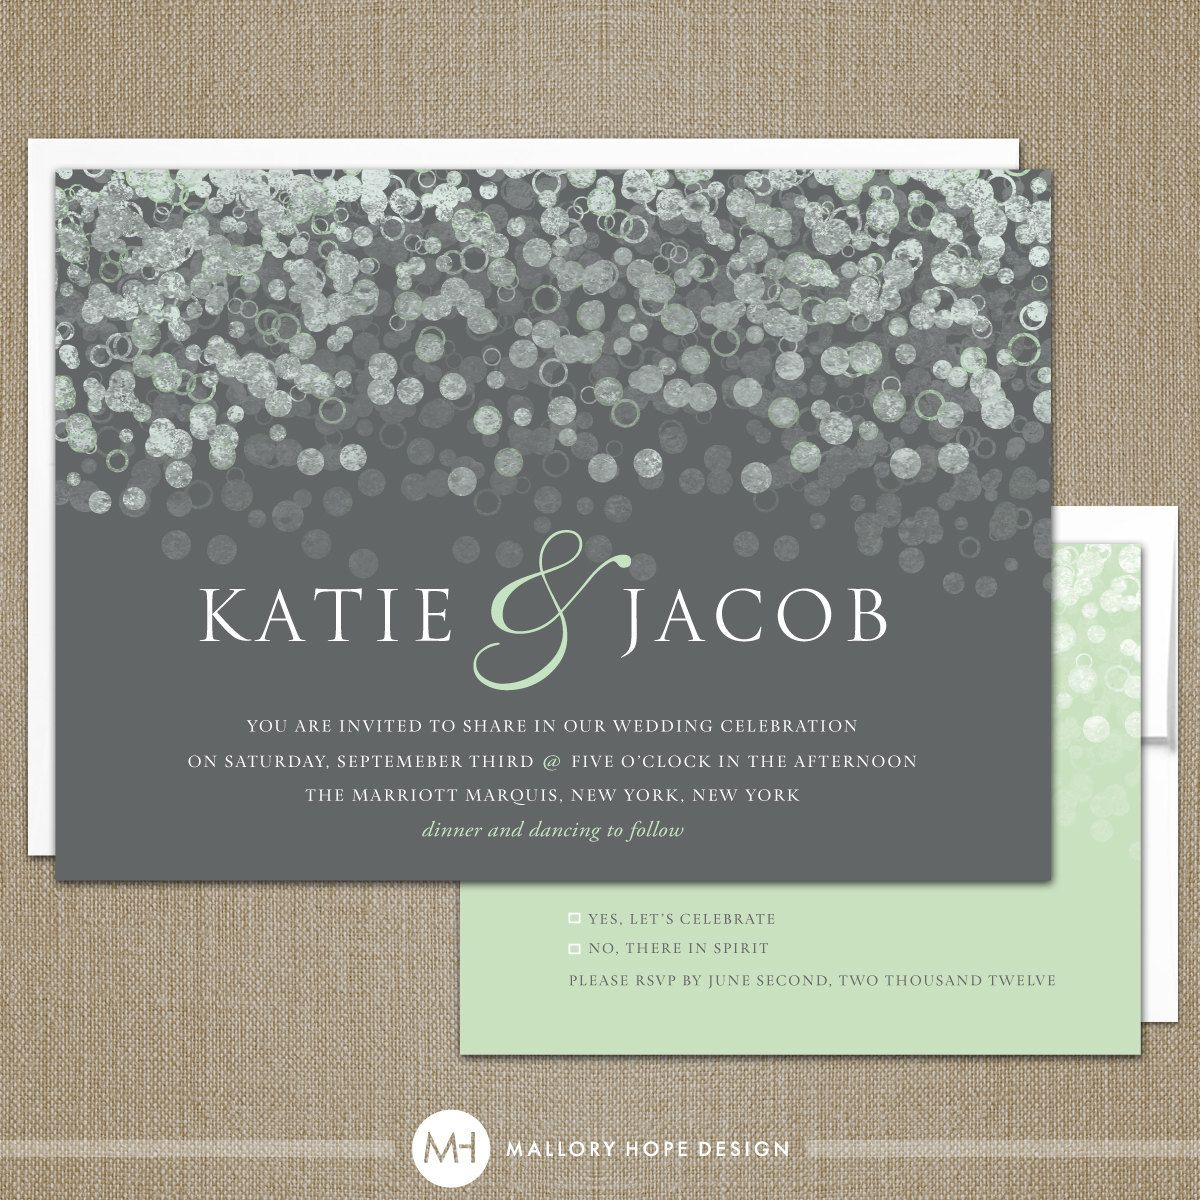 second wedding invitations wording%0A Champagne Bubbles Modern Wedding Invitation  u     RSVP Set  Customize Colors  and Content  DIY